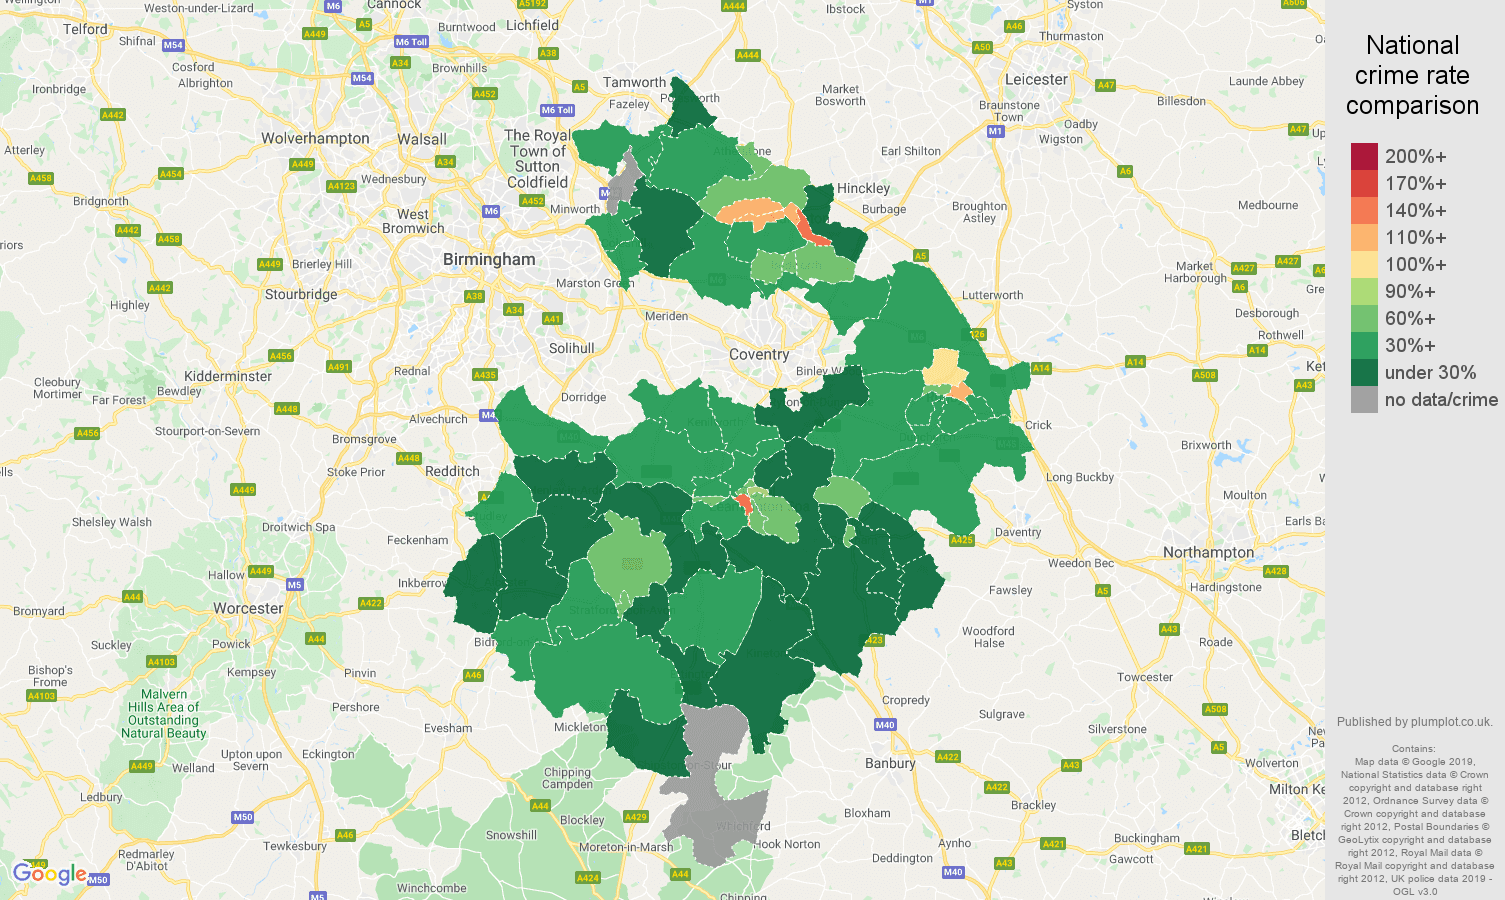 Warwickshire public order crime rate comparison map